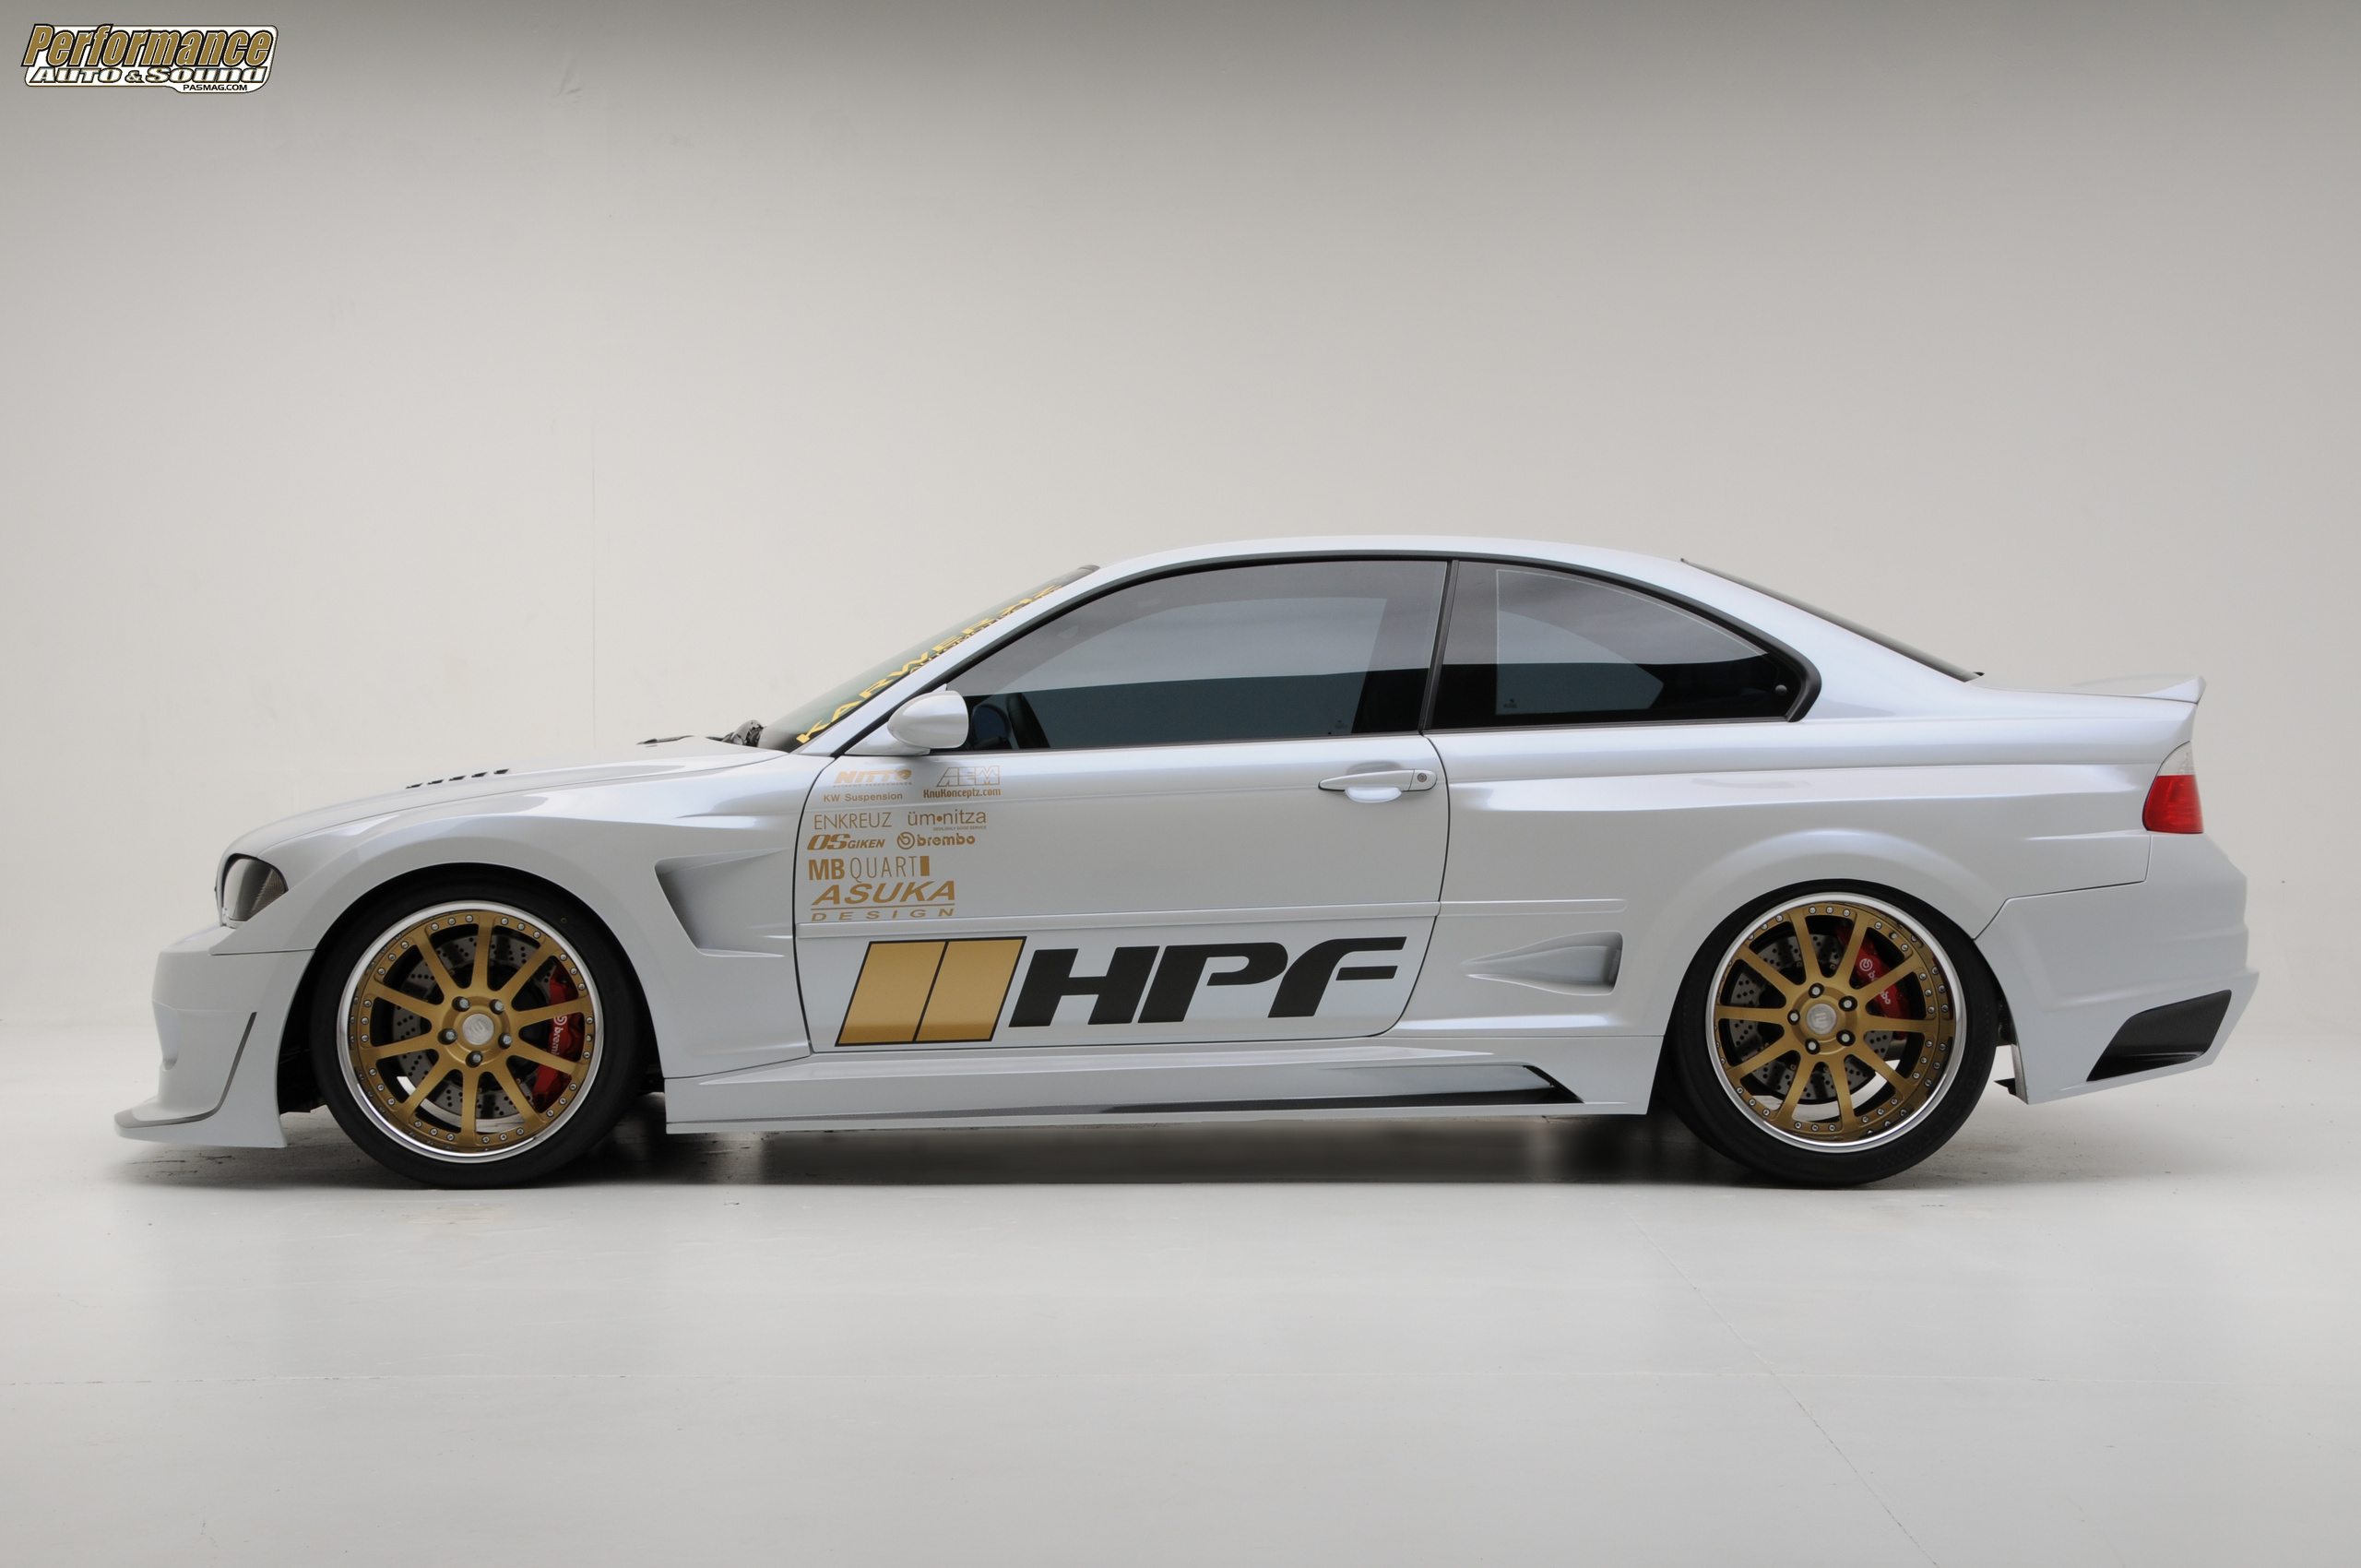 bmw e46 m3 turbo by hpf bmw photo 28155962 fanpop. Black Bedroom Furniture Sets. Home Design Ideas